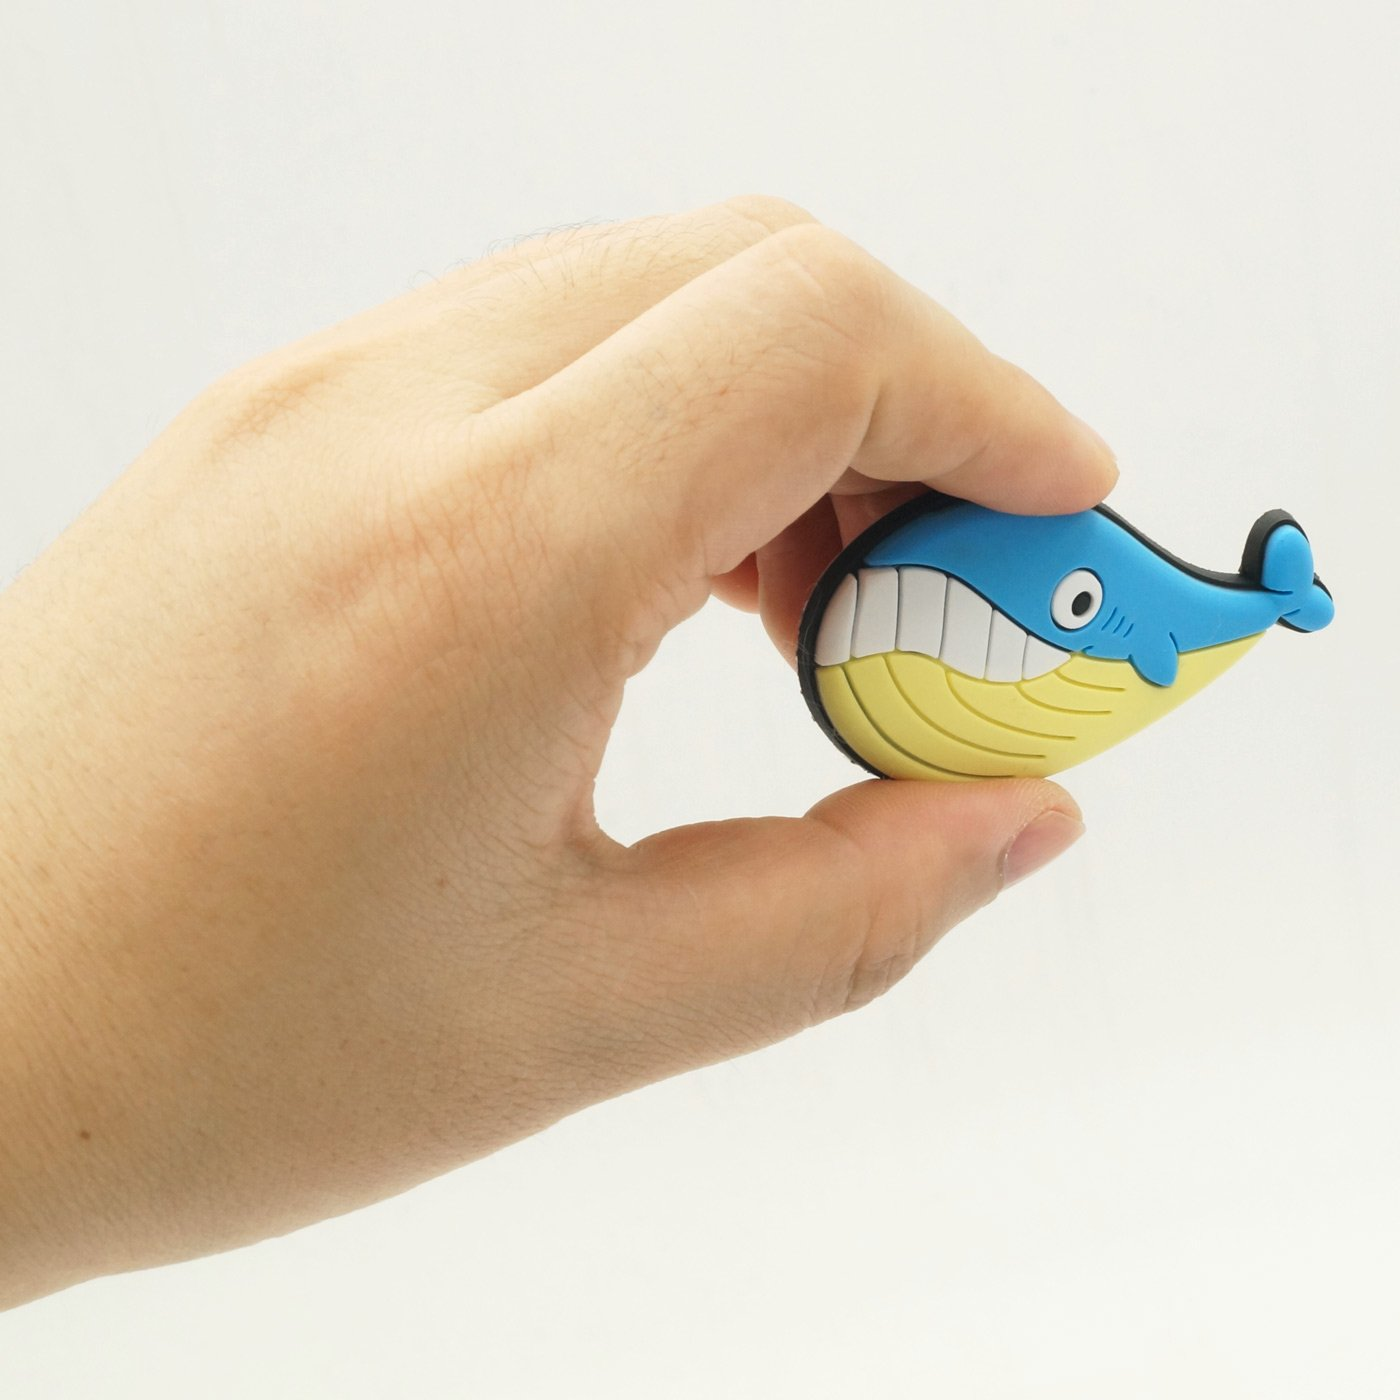 Fridge Magnets for Toddlers Under Sea Ocean Animal Magnets Cartoon Magnetic Fridge Funky Toy for Kids by Happy Cherry (Image #3)